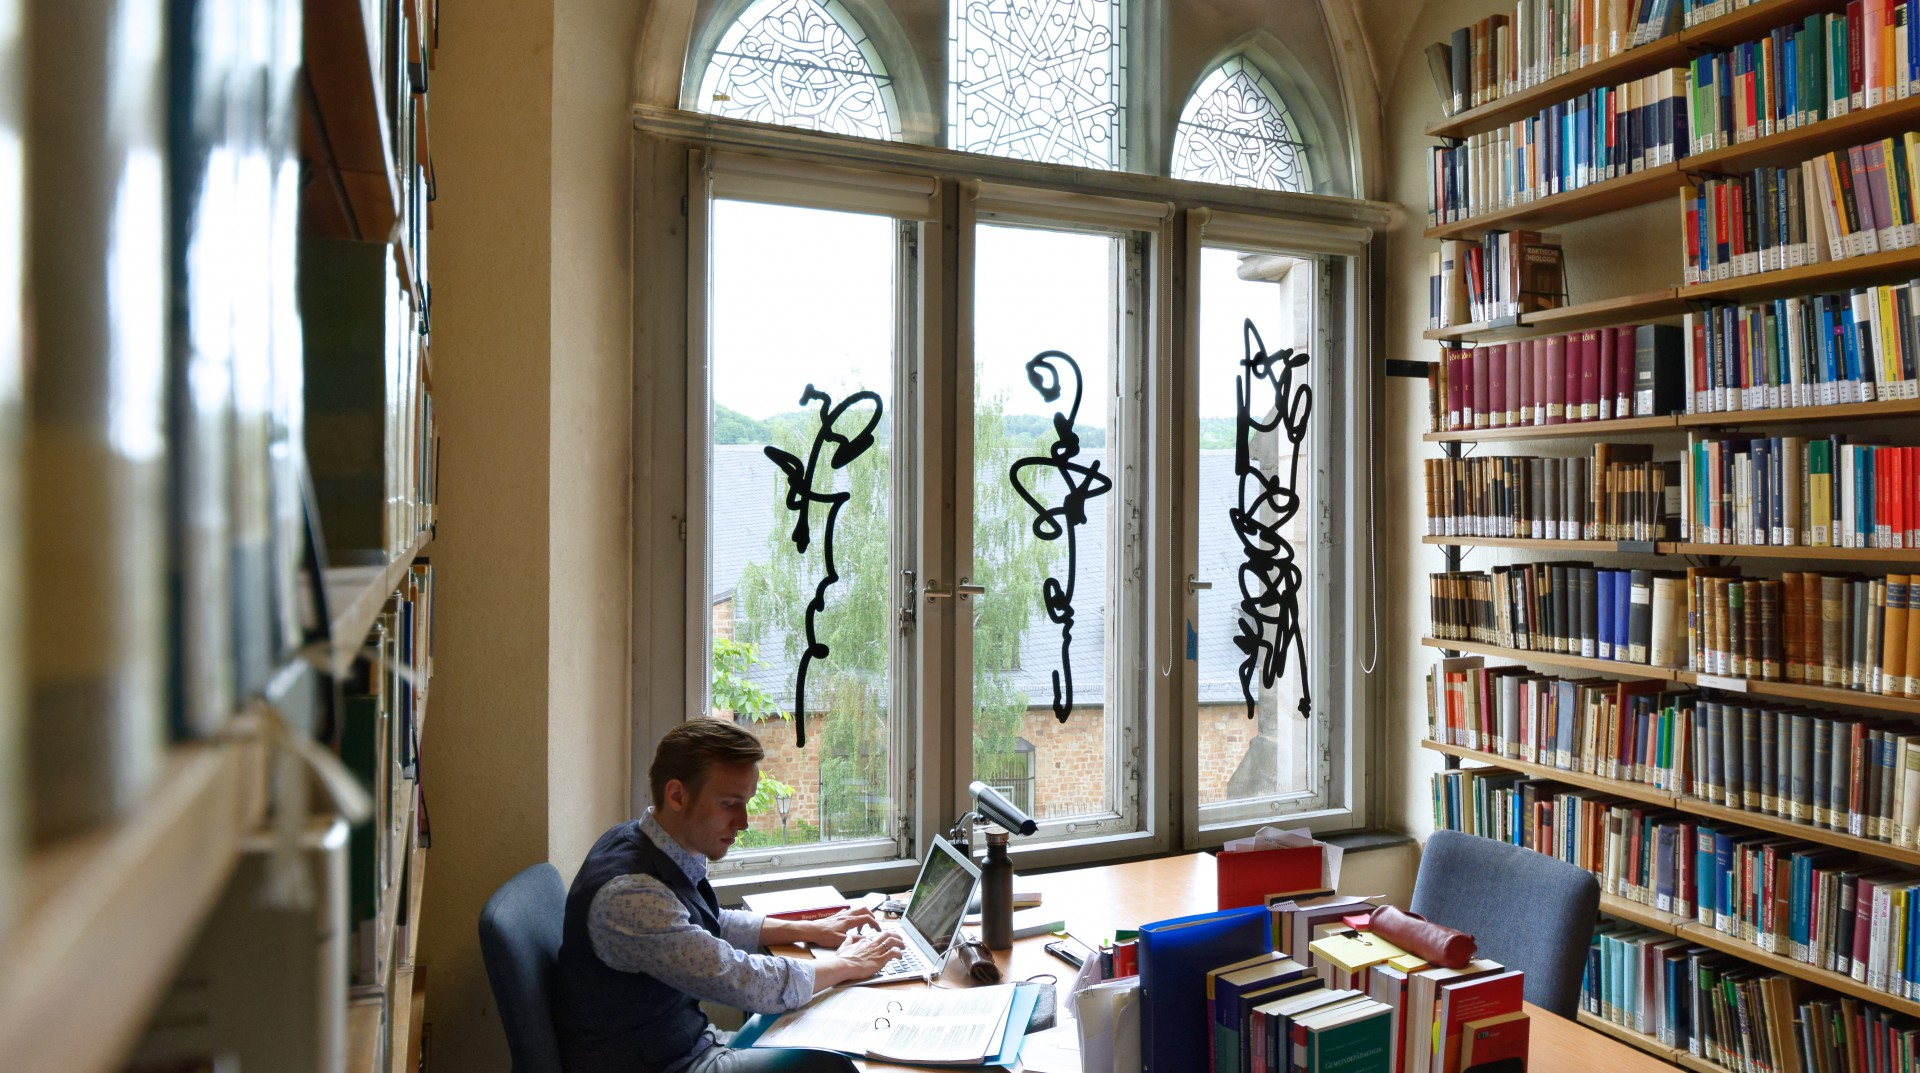 Library of Philipps University Marburg, Single Characters, foilprint on glass, ca. 45 x140 cm, 2019